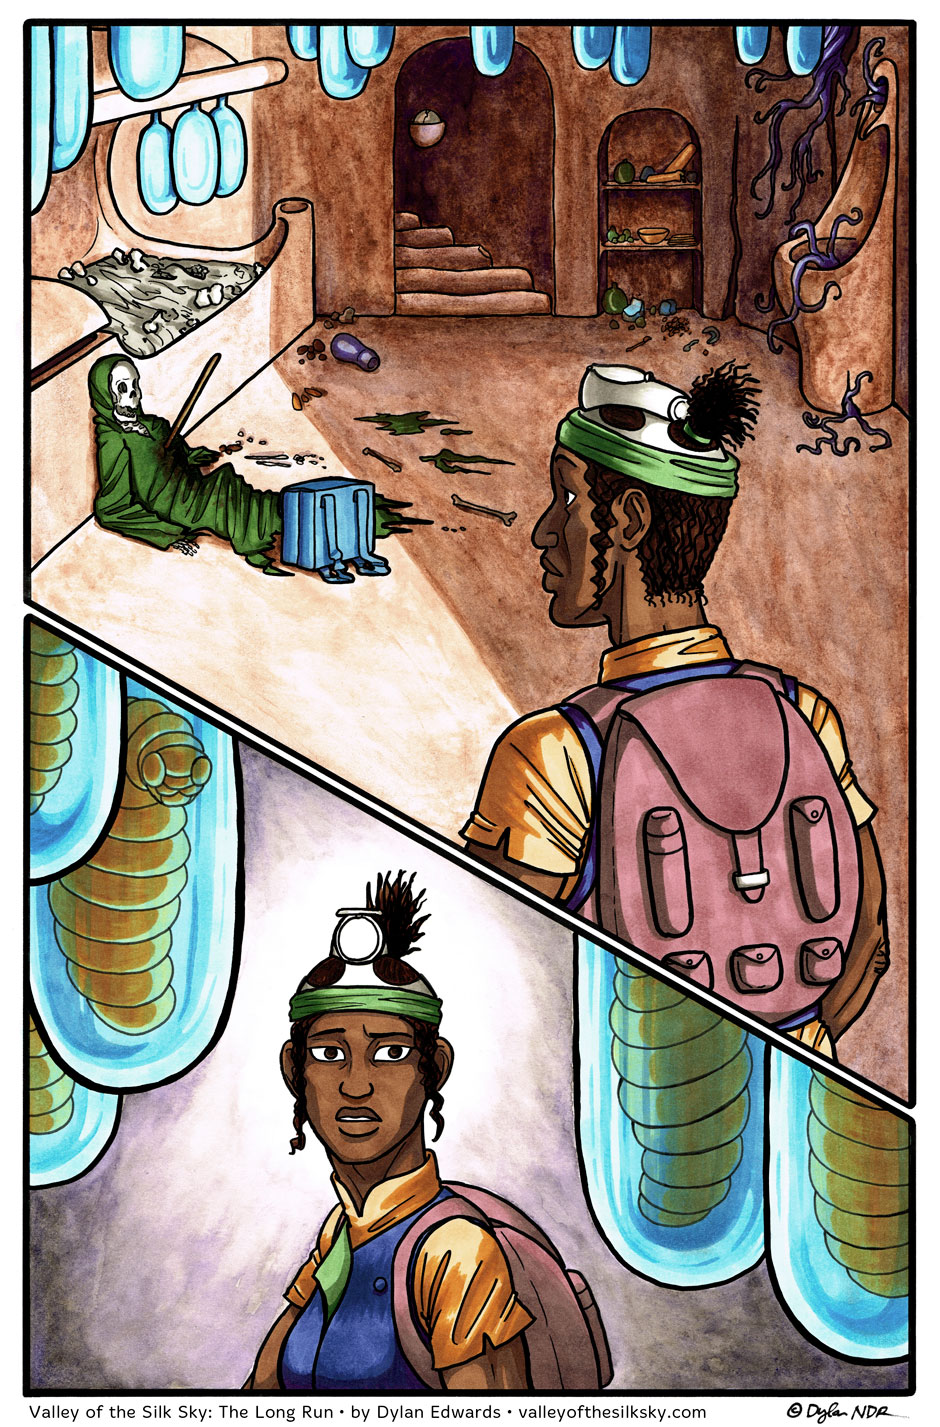 Valley of the Silk Sky queer YA webcomic